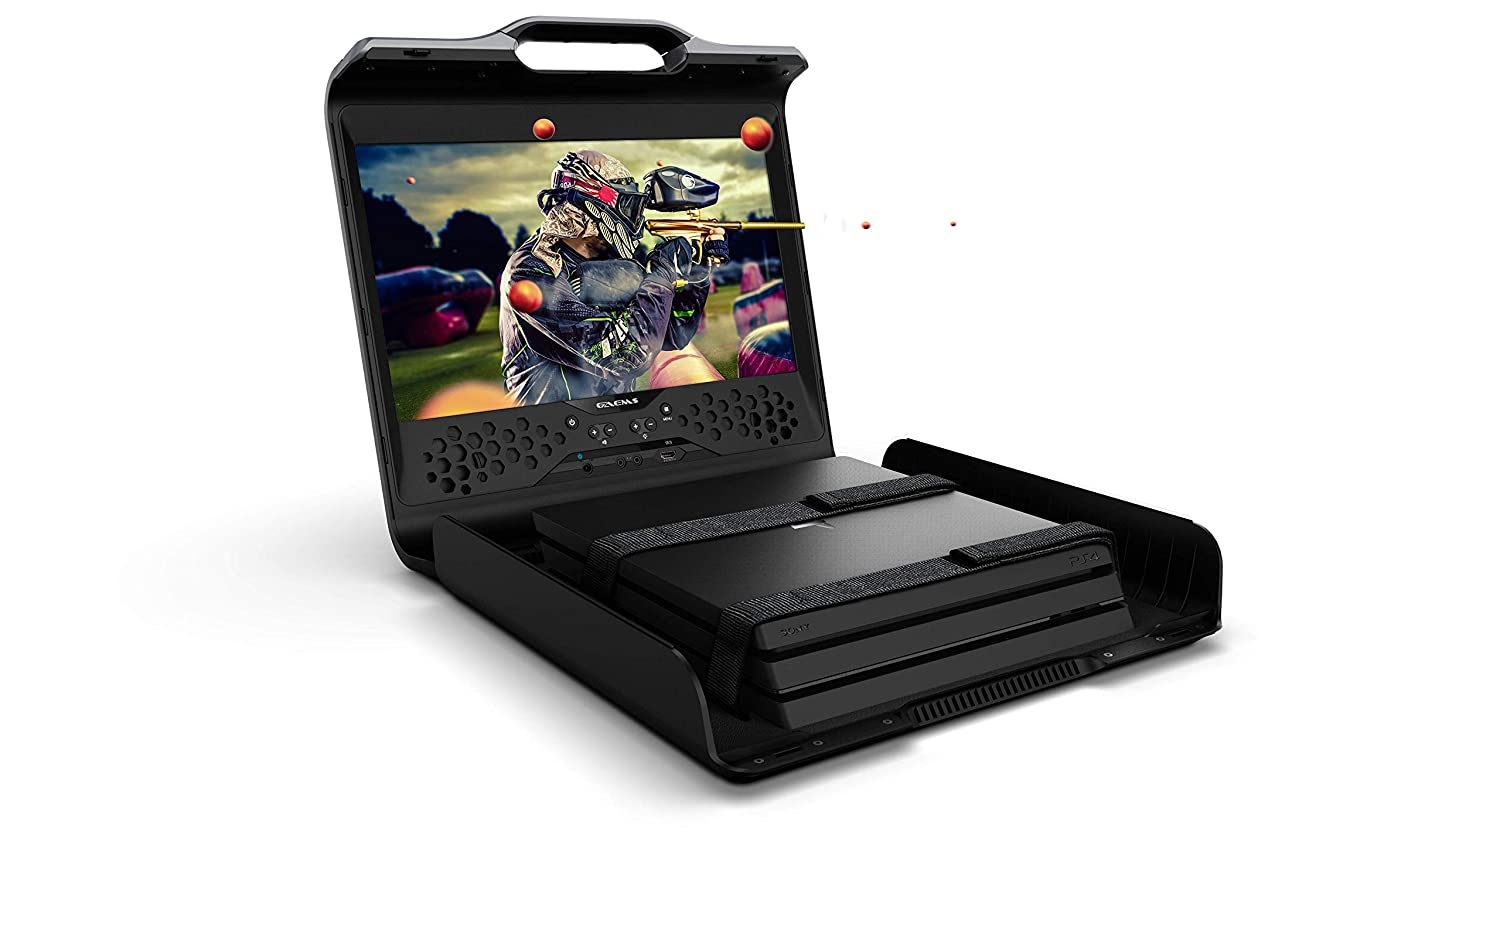 GAEMS Sentinel Pro Xp 1080P Portable Gaming Monitor for Xbox One X, Xbox One S, PlayStation 4 Pro, PlayStation 4,(Consoles Not Included)